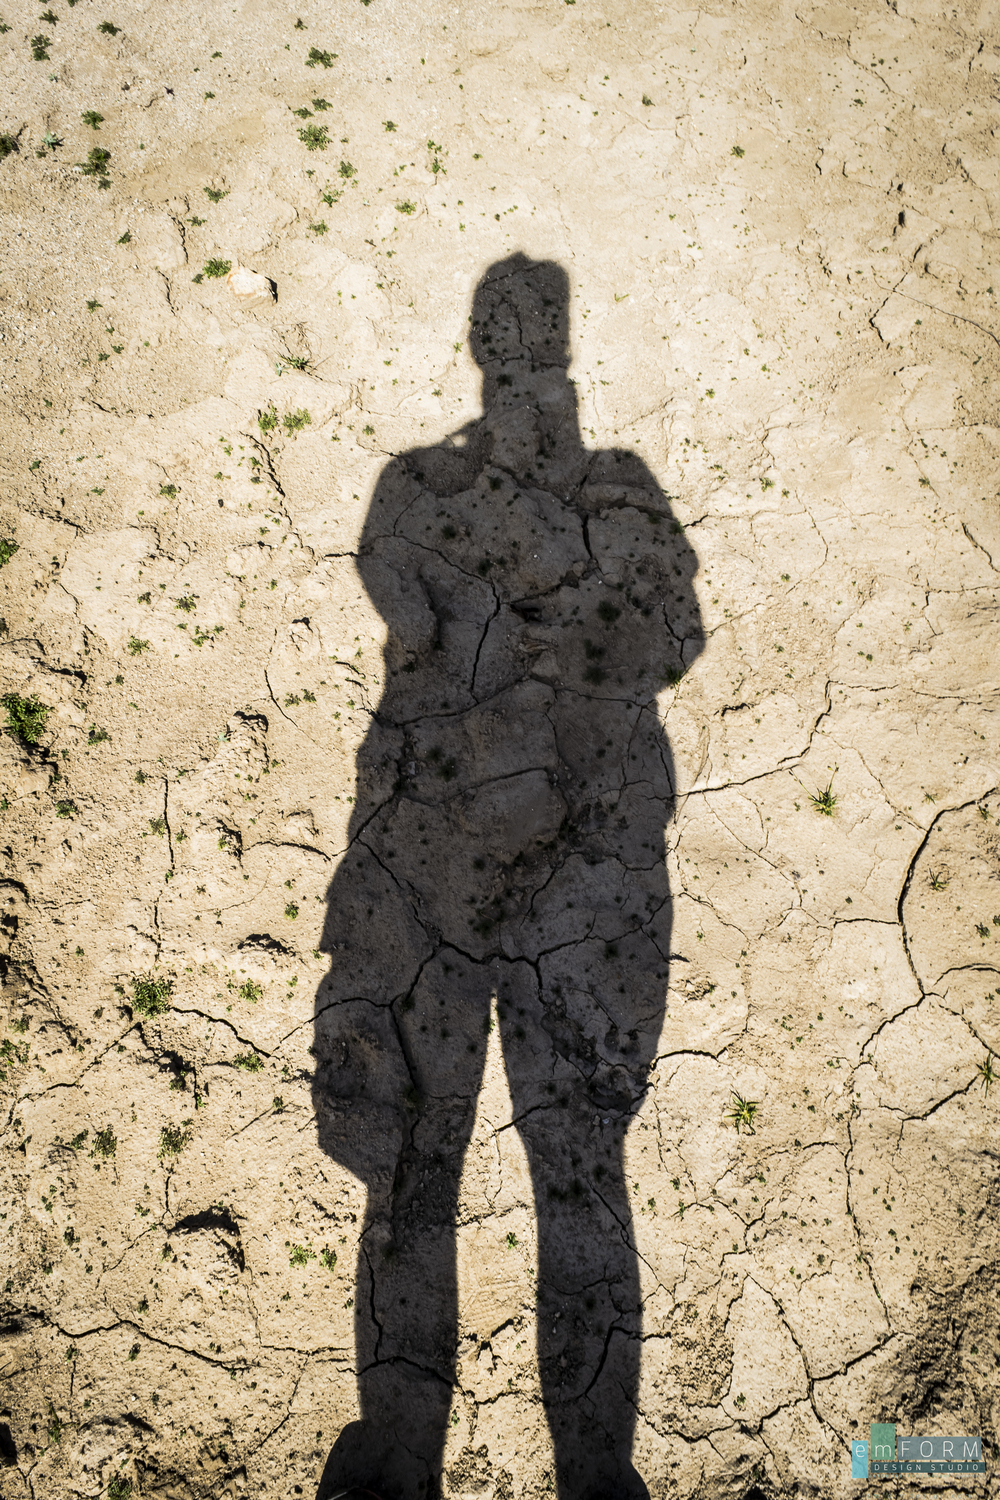 Cracked lake bed adds wonderful texture to my shadow.